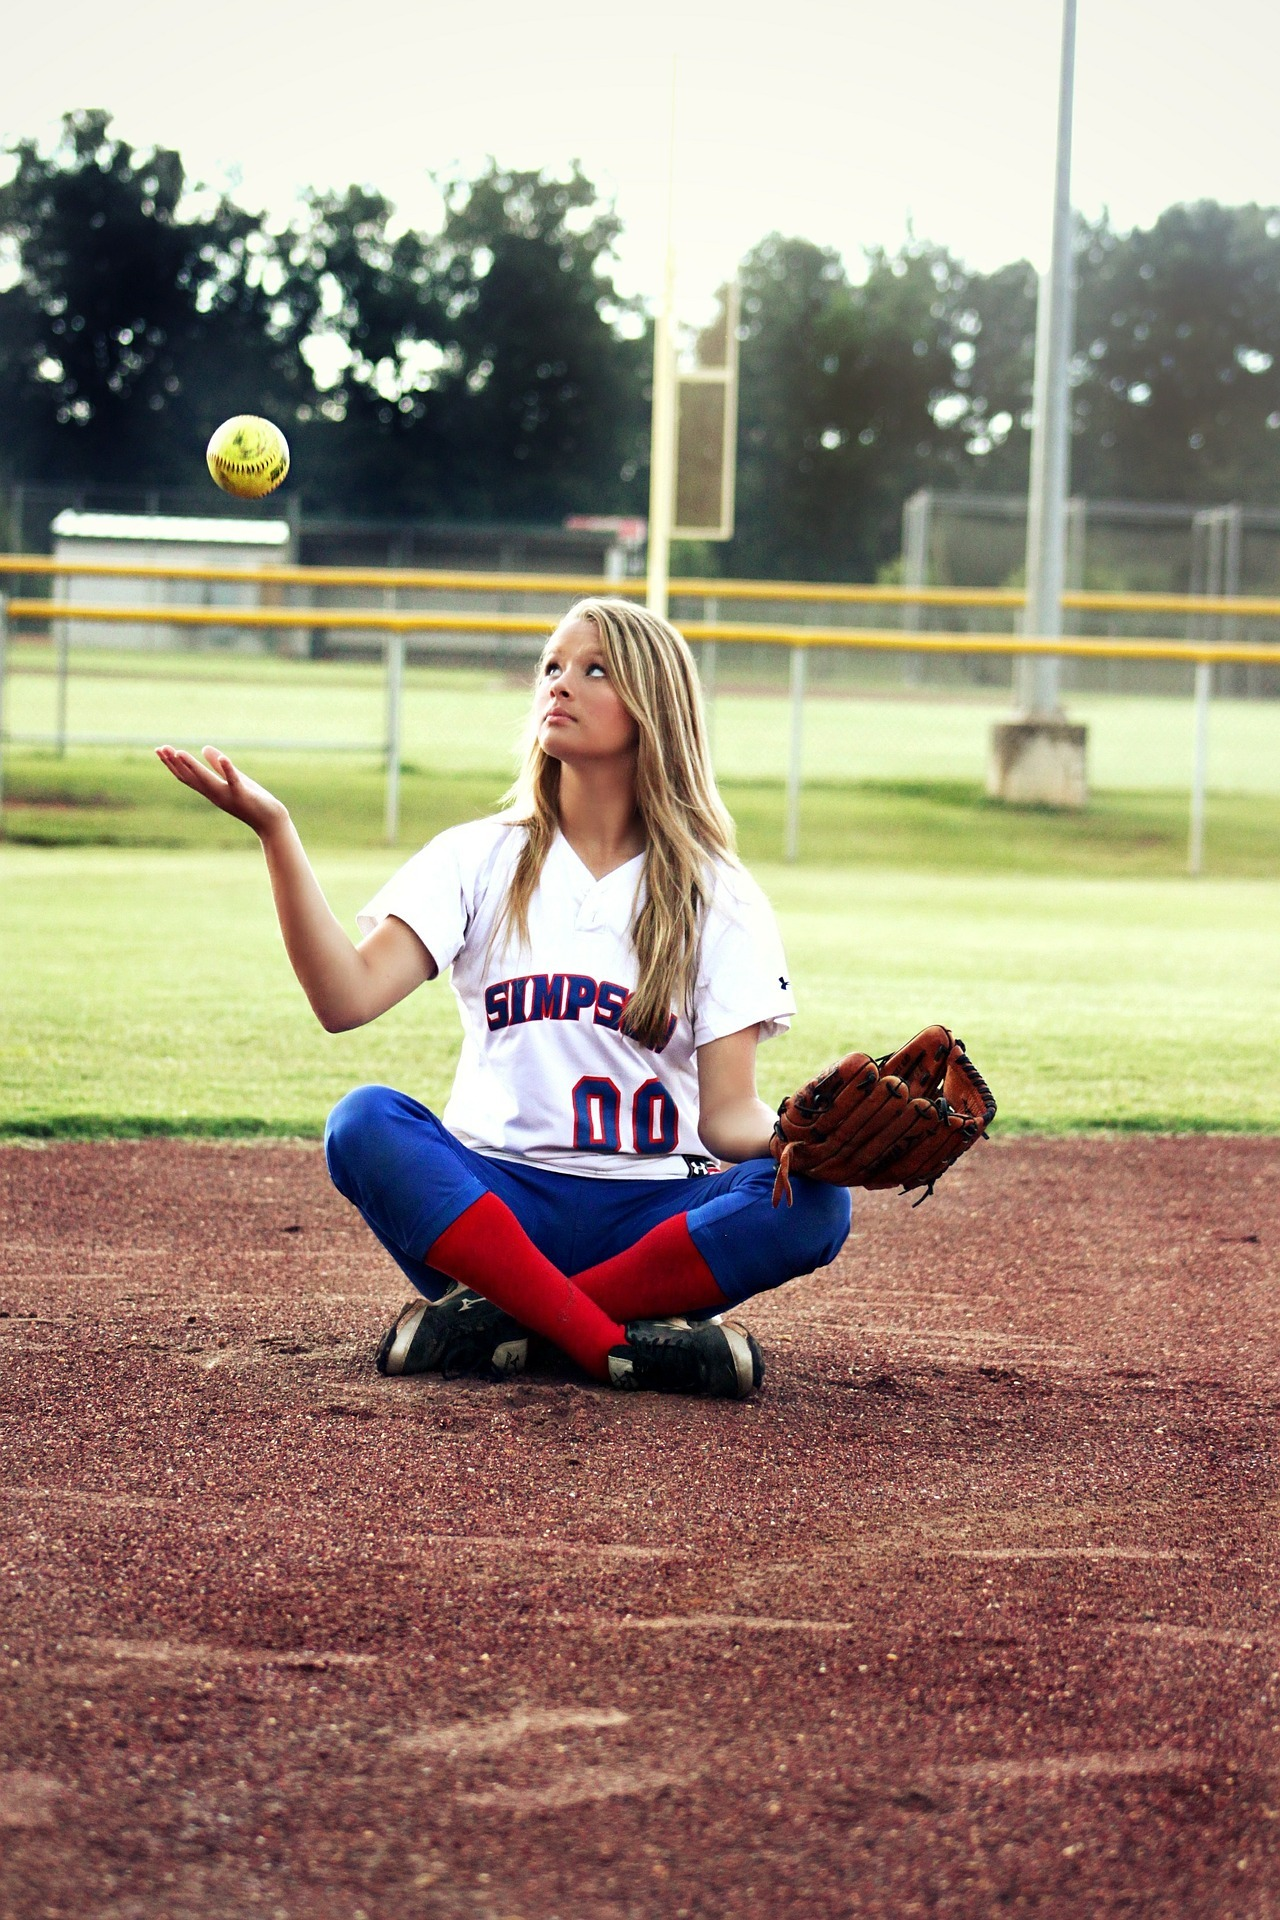 Softball Girl